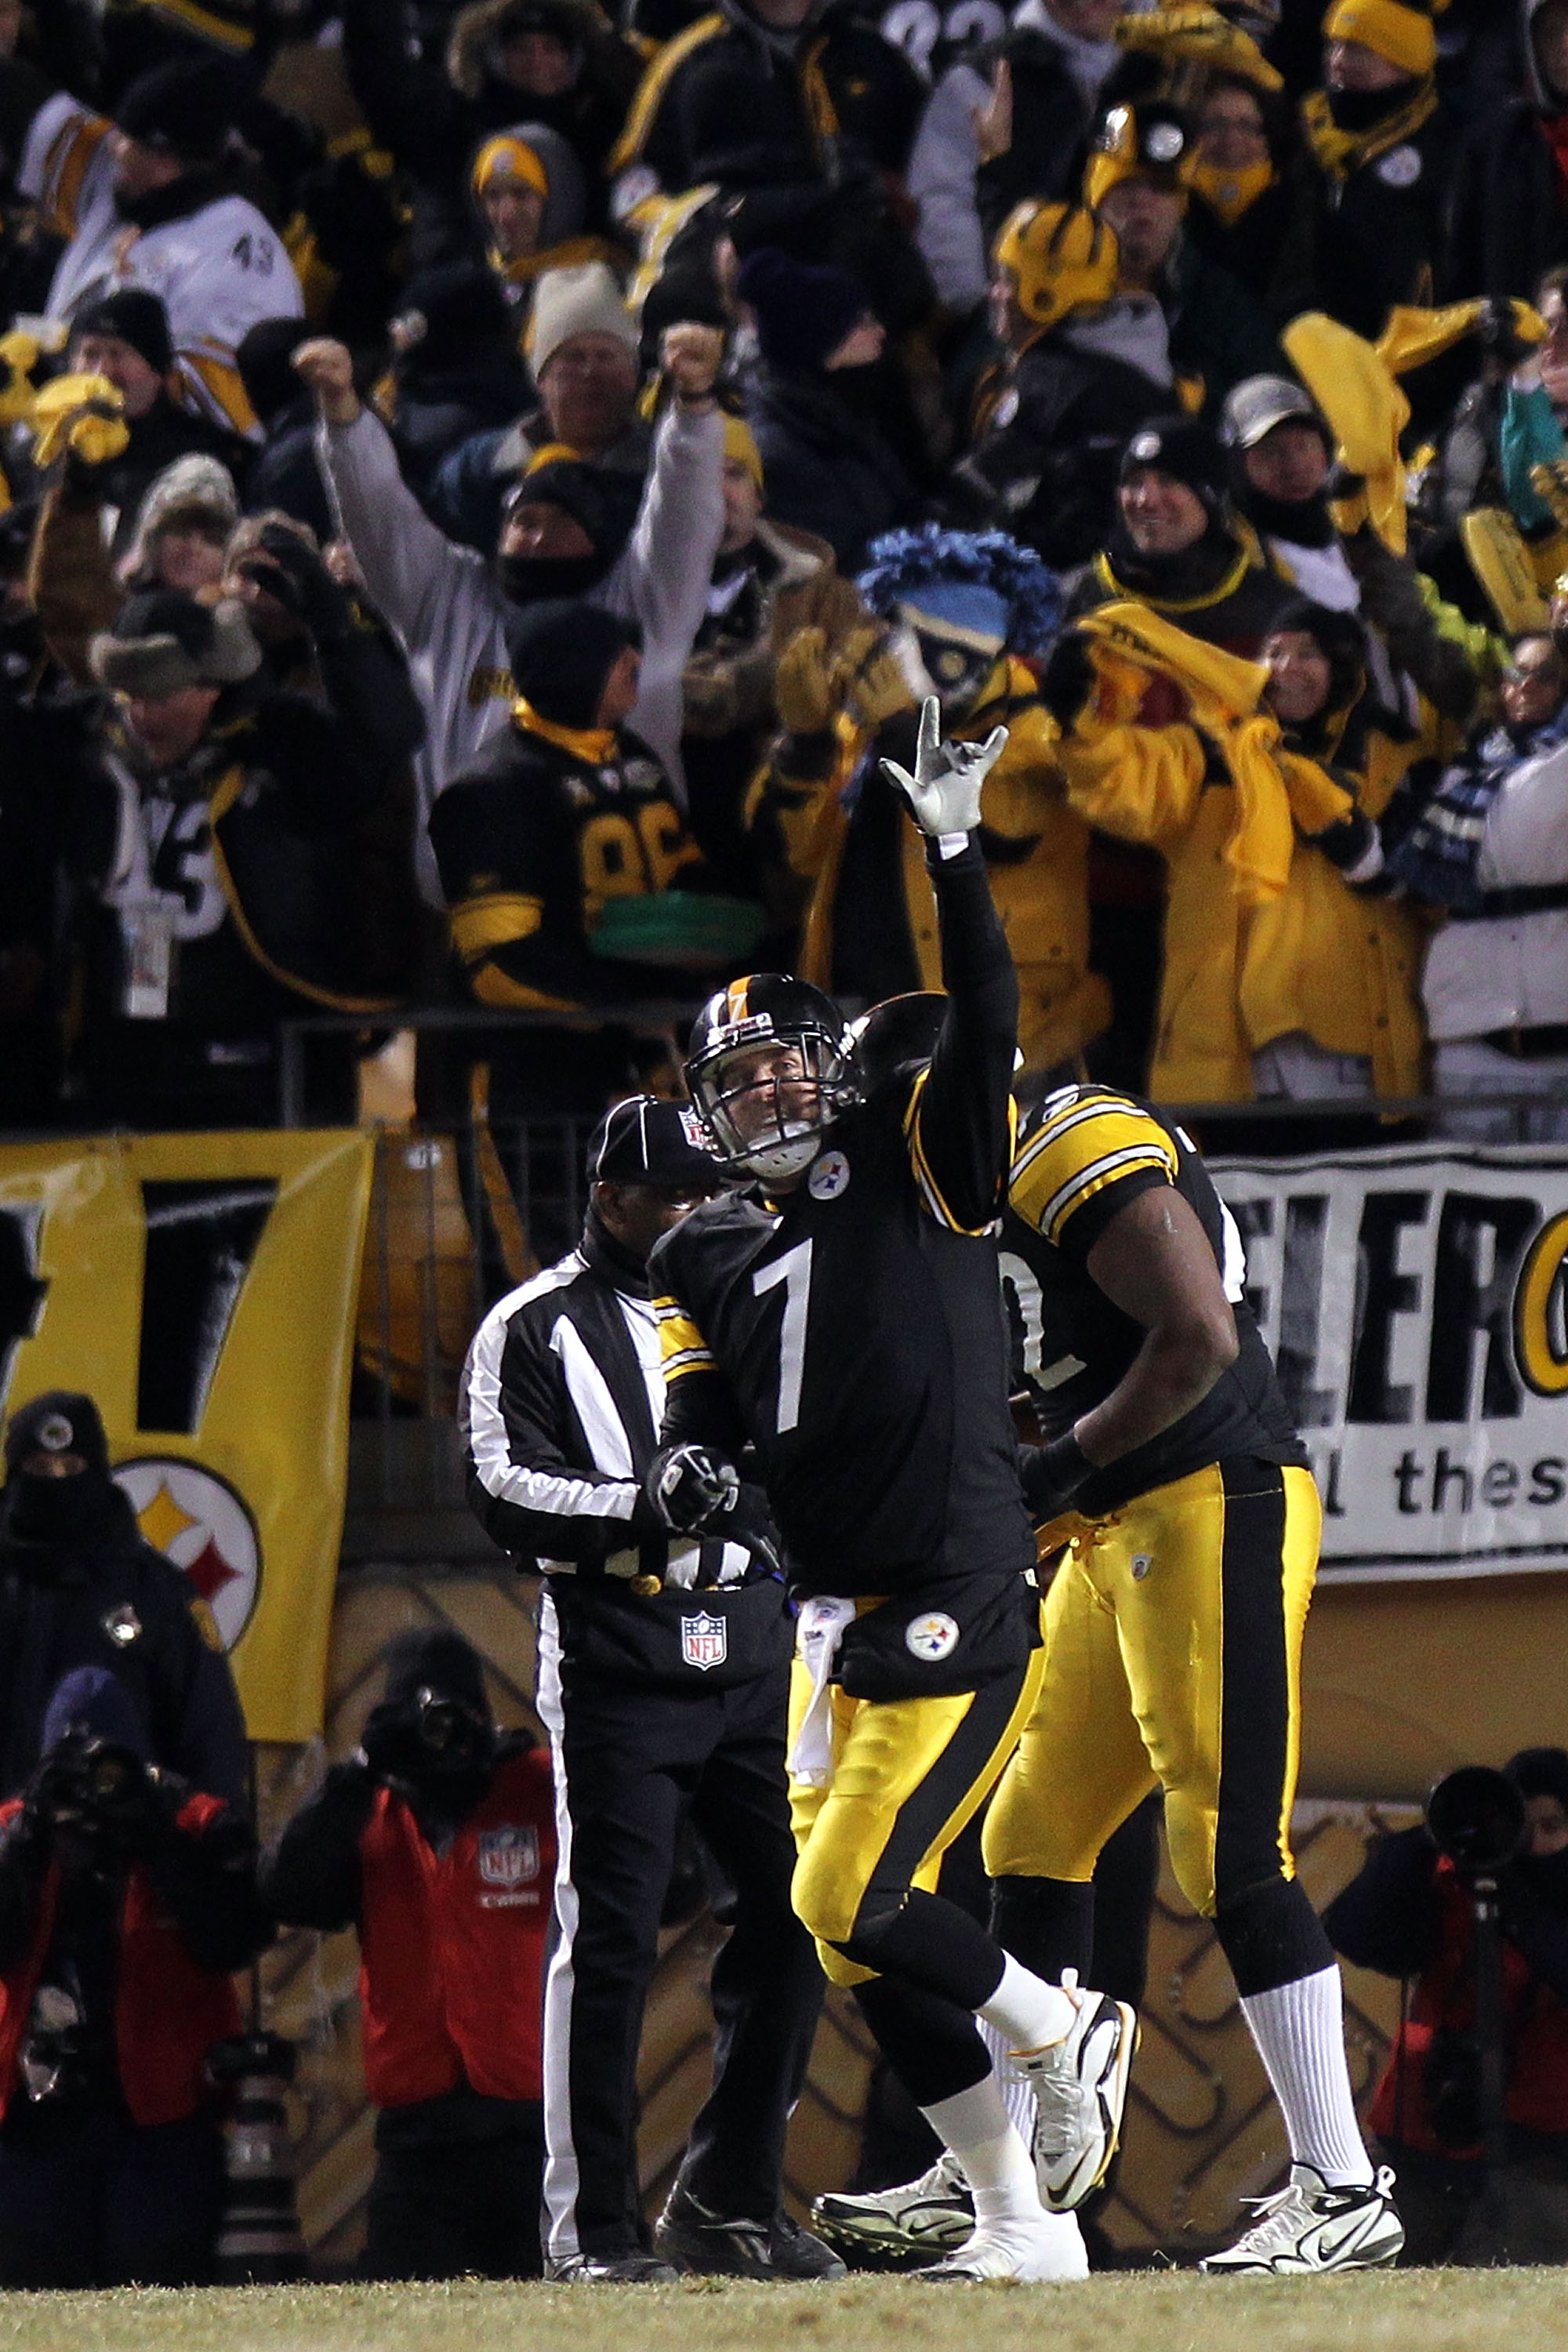 PITTSBURGH, PA - JANUARY 23:  Ben Roethlisberger #7 of the Pittsburgh Steelers celebrates a second quarter touchdown against the New York Jets during the 2011 AFC Championship game at Heinz Field on January 23, 2011 in Pittsburgh, Pennsylvania.  (Photo by